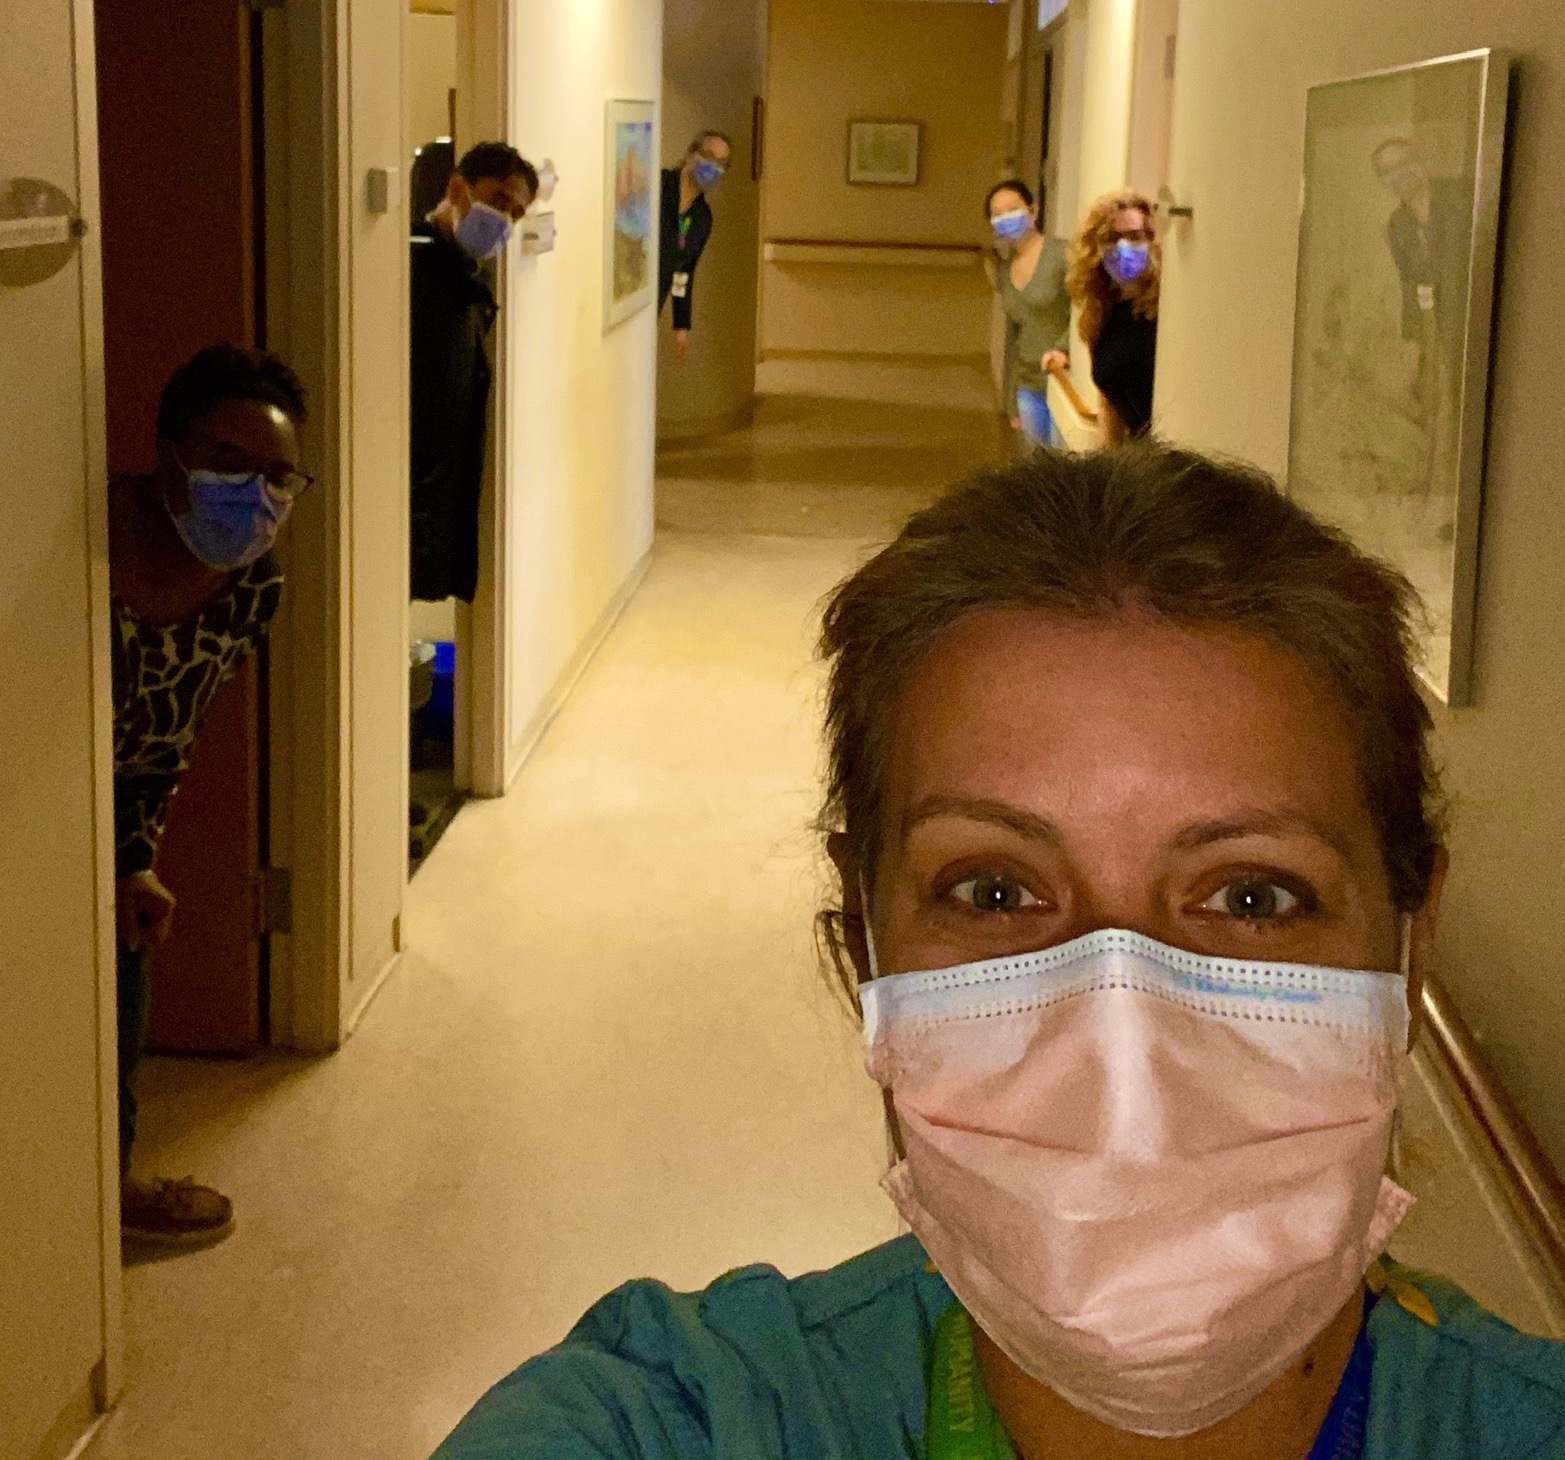 hospital employees in a hallway leaning out of office doors. They are wearing masks.